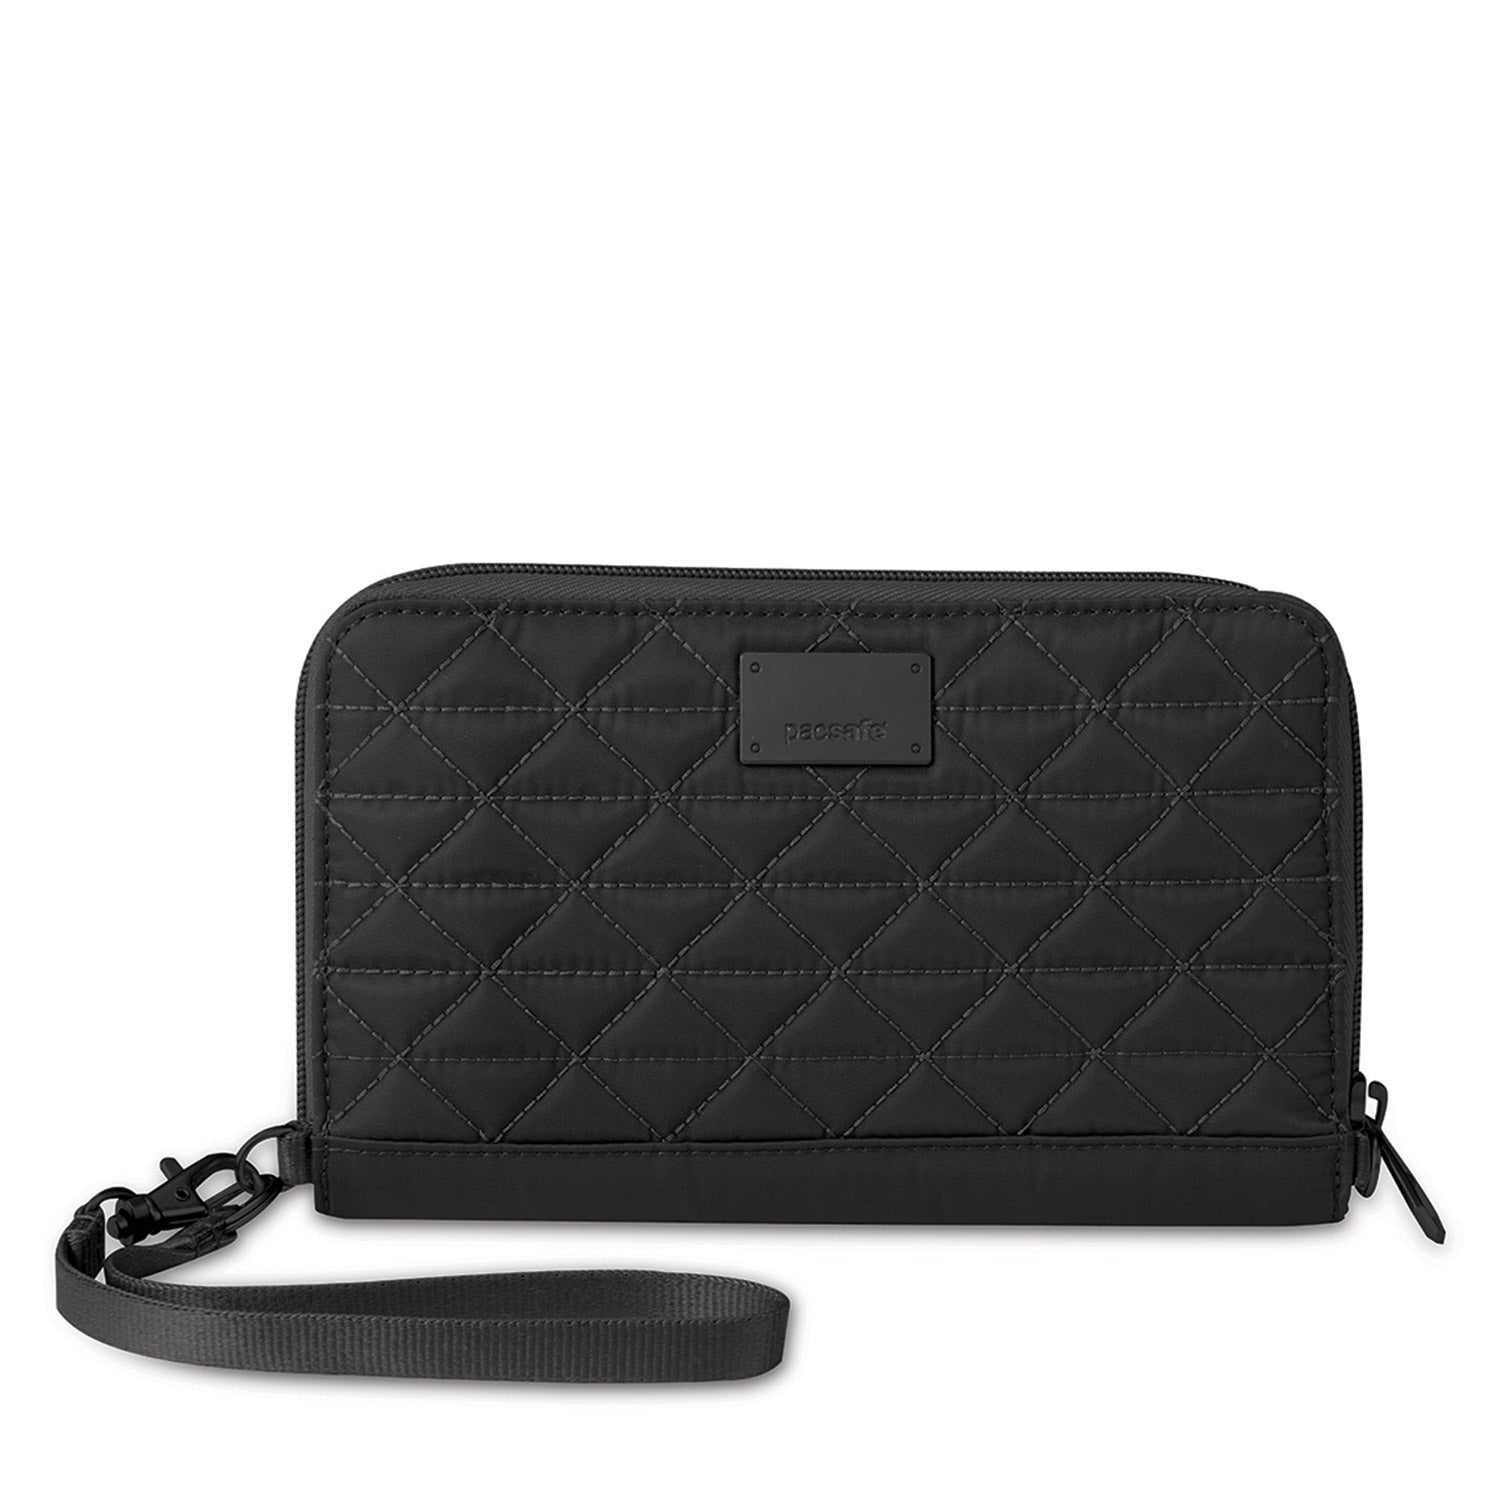 Pacsafe® RFIDsafe™ W200 RFID Blocking Travel Wallet